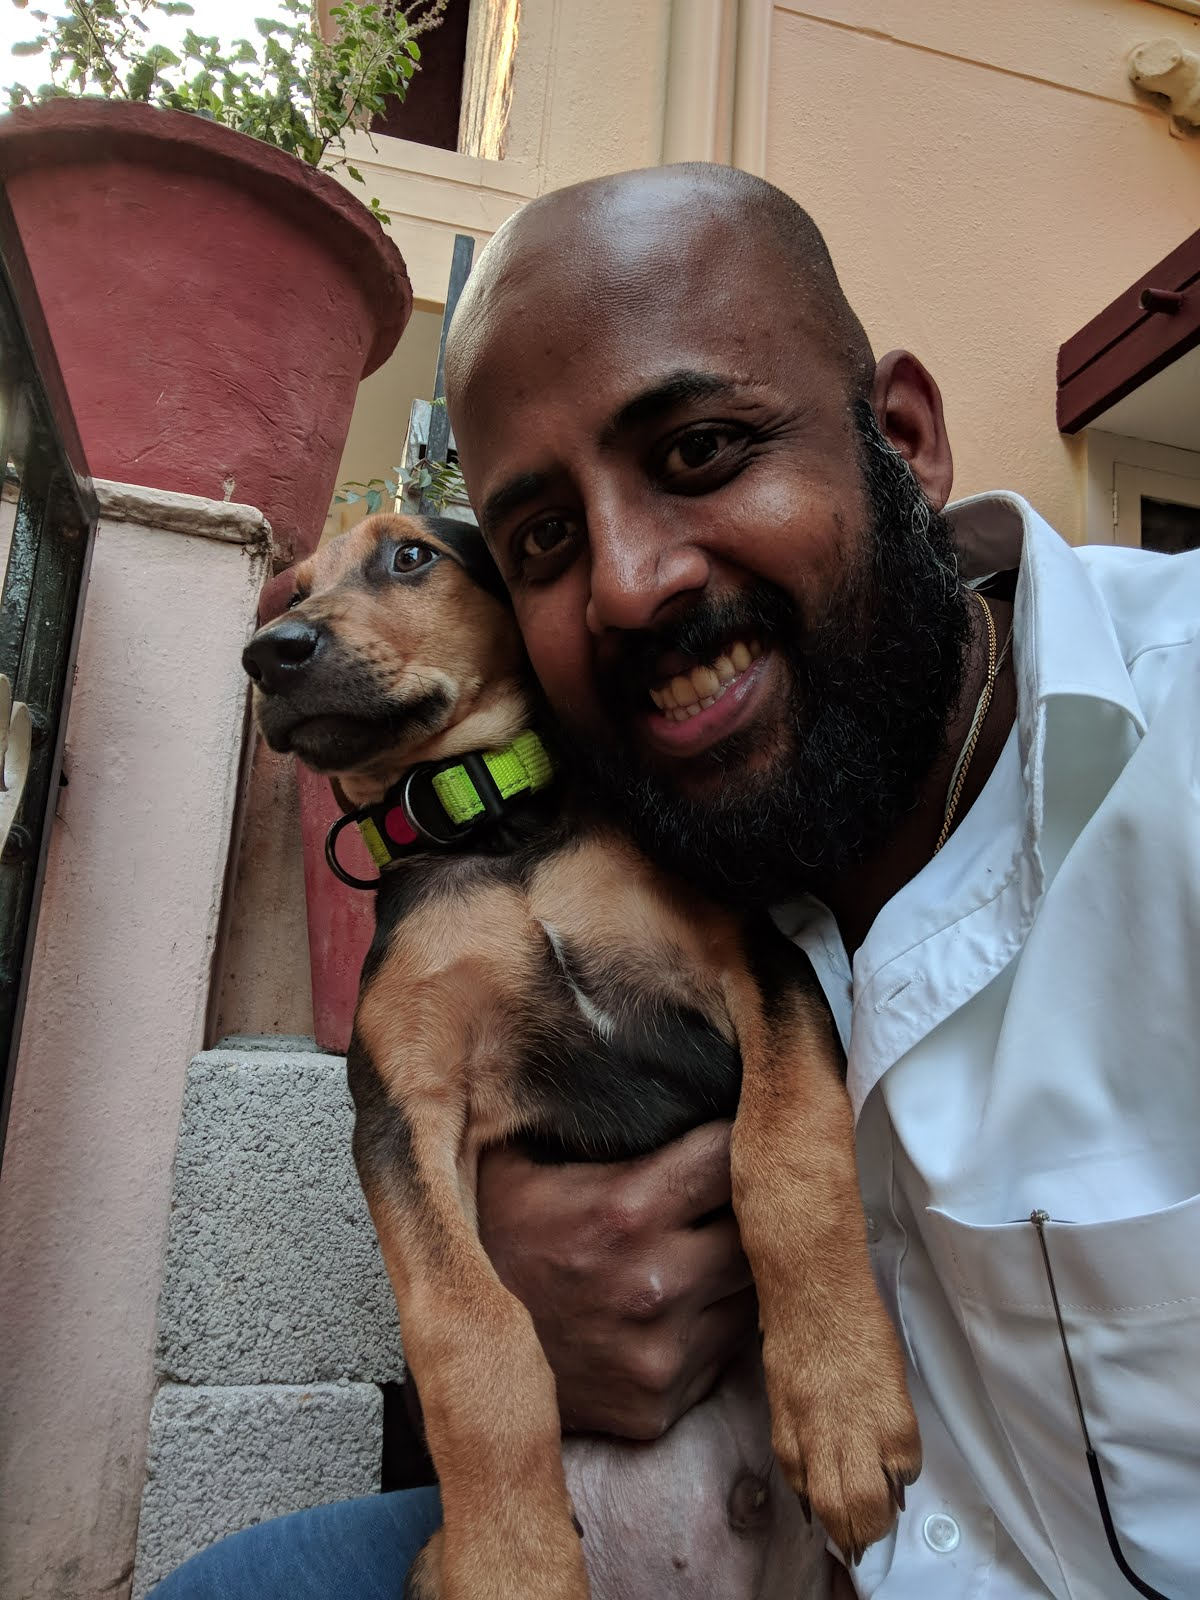 Selfie time - me and my puppy Alpha